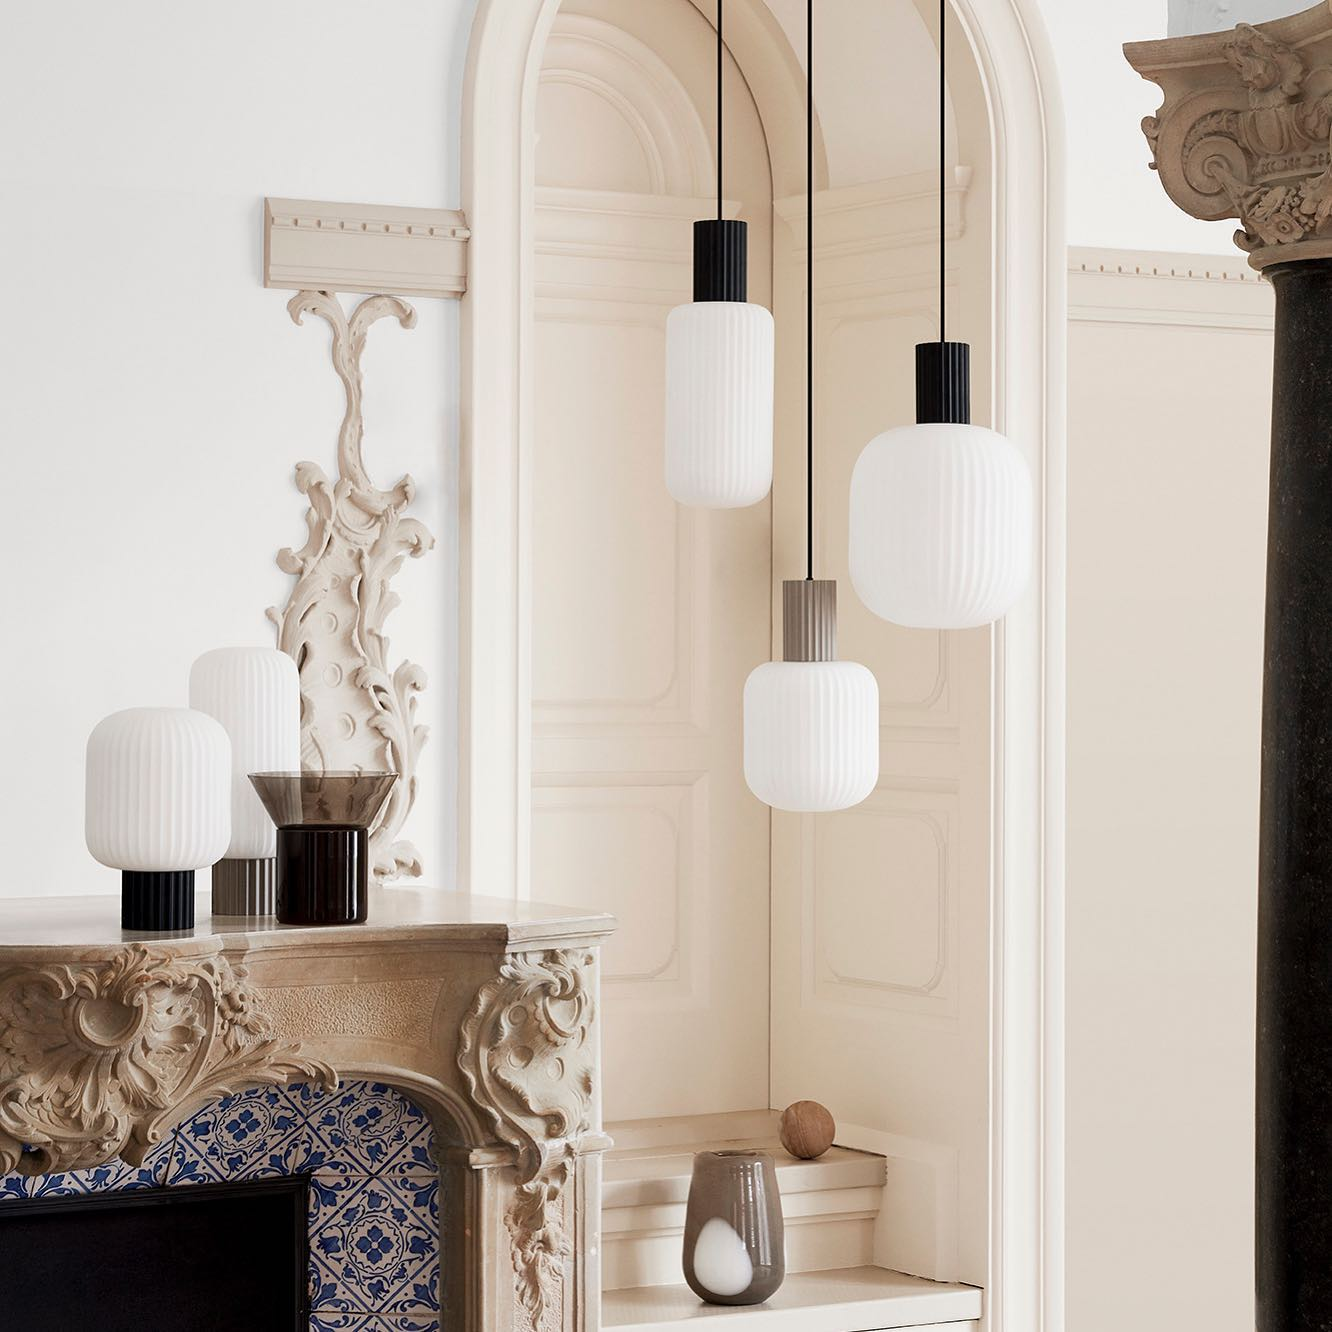 Take a peek at our Spring Summer 2021/22. We are loving these stunning Lolly lamps from Broste Copenhagen in white opal glass trimmed with black or sand metal, come in 3 pendant sizes and 2 table versions.  So excited with the new collection. . . #lollylamps #pendants #hanginglamps #opalglass #stunninglamps #lighting